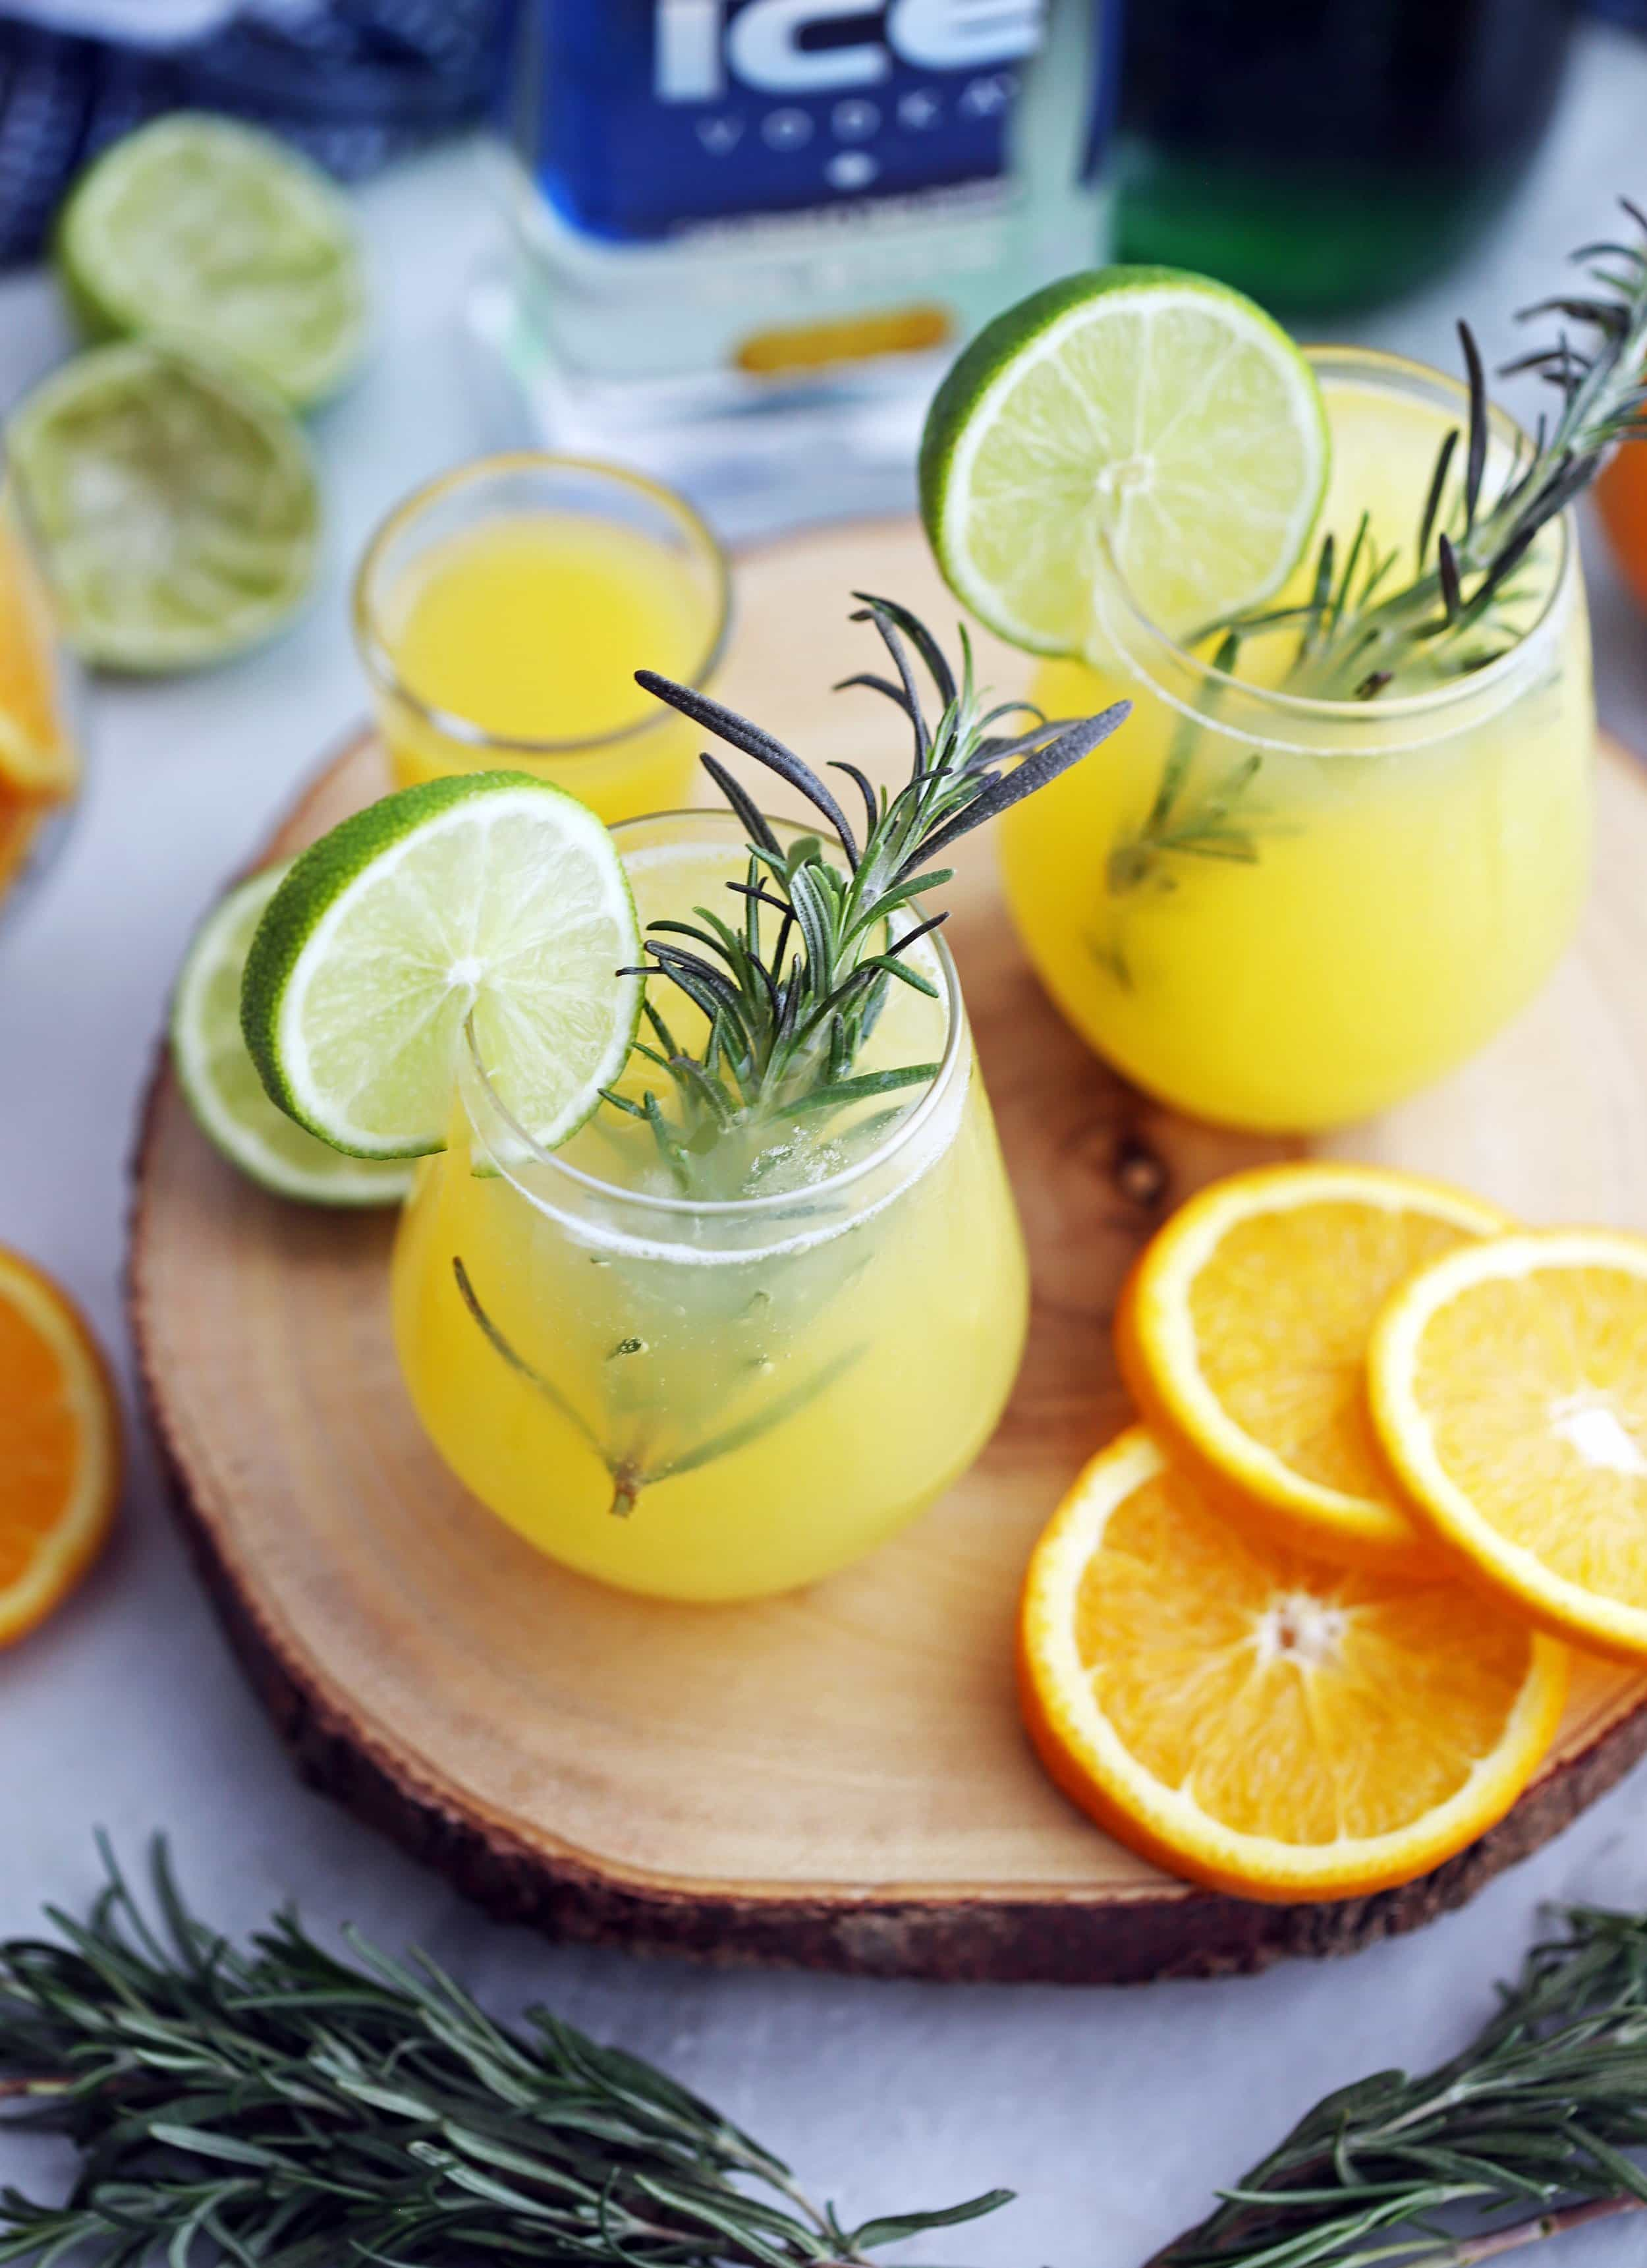 An high-angled view of two glasses of sparkling maple orange vodka with fresh rosemary sprigs, lime slices,and orange slices.